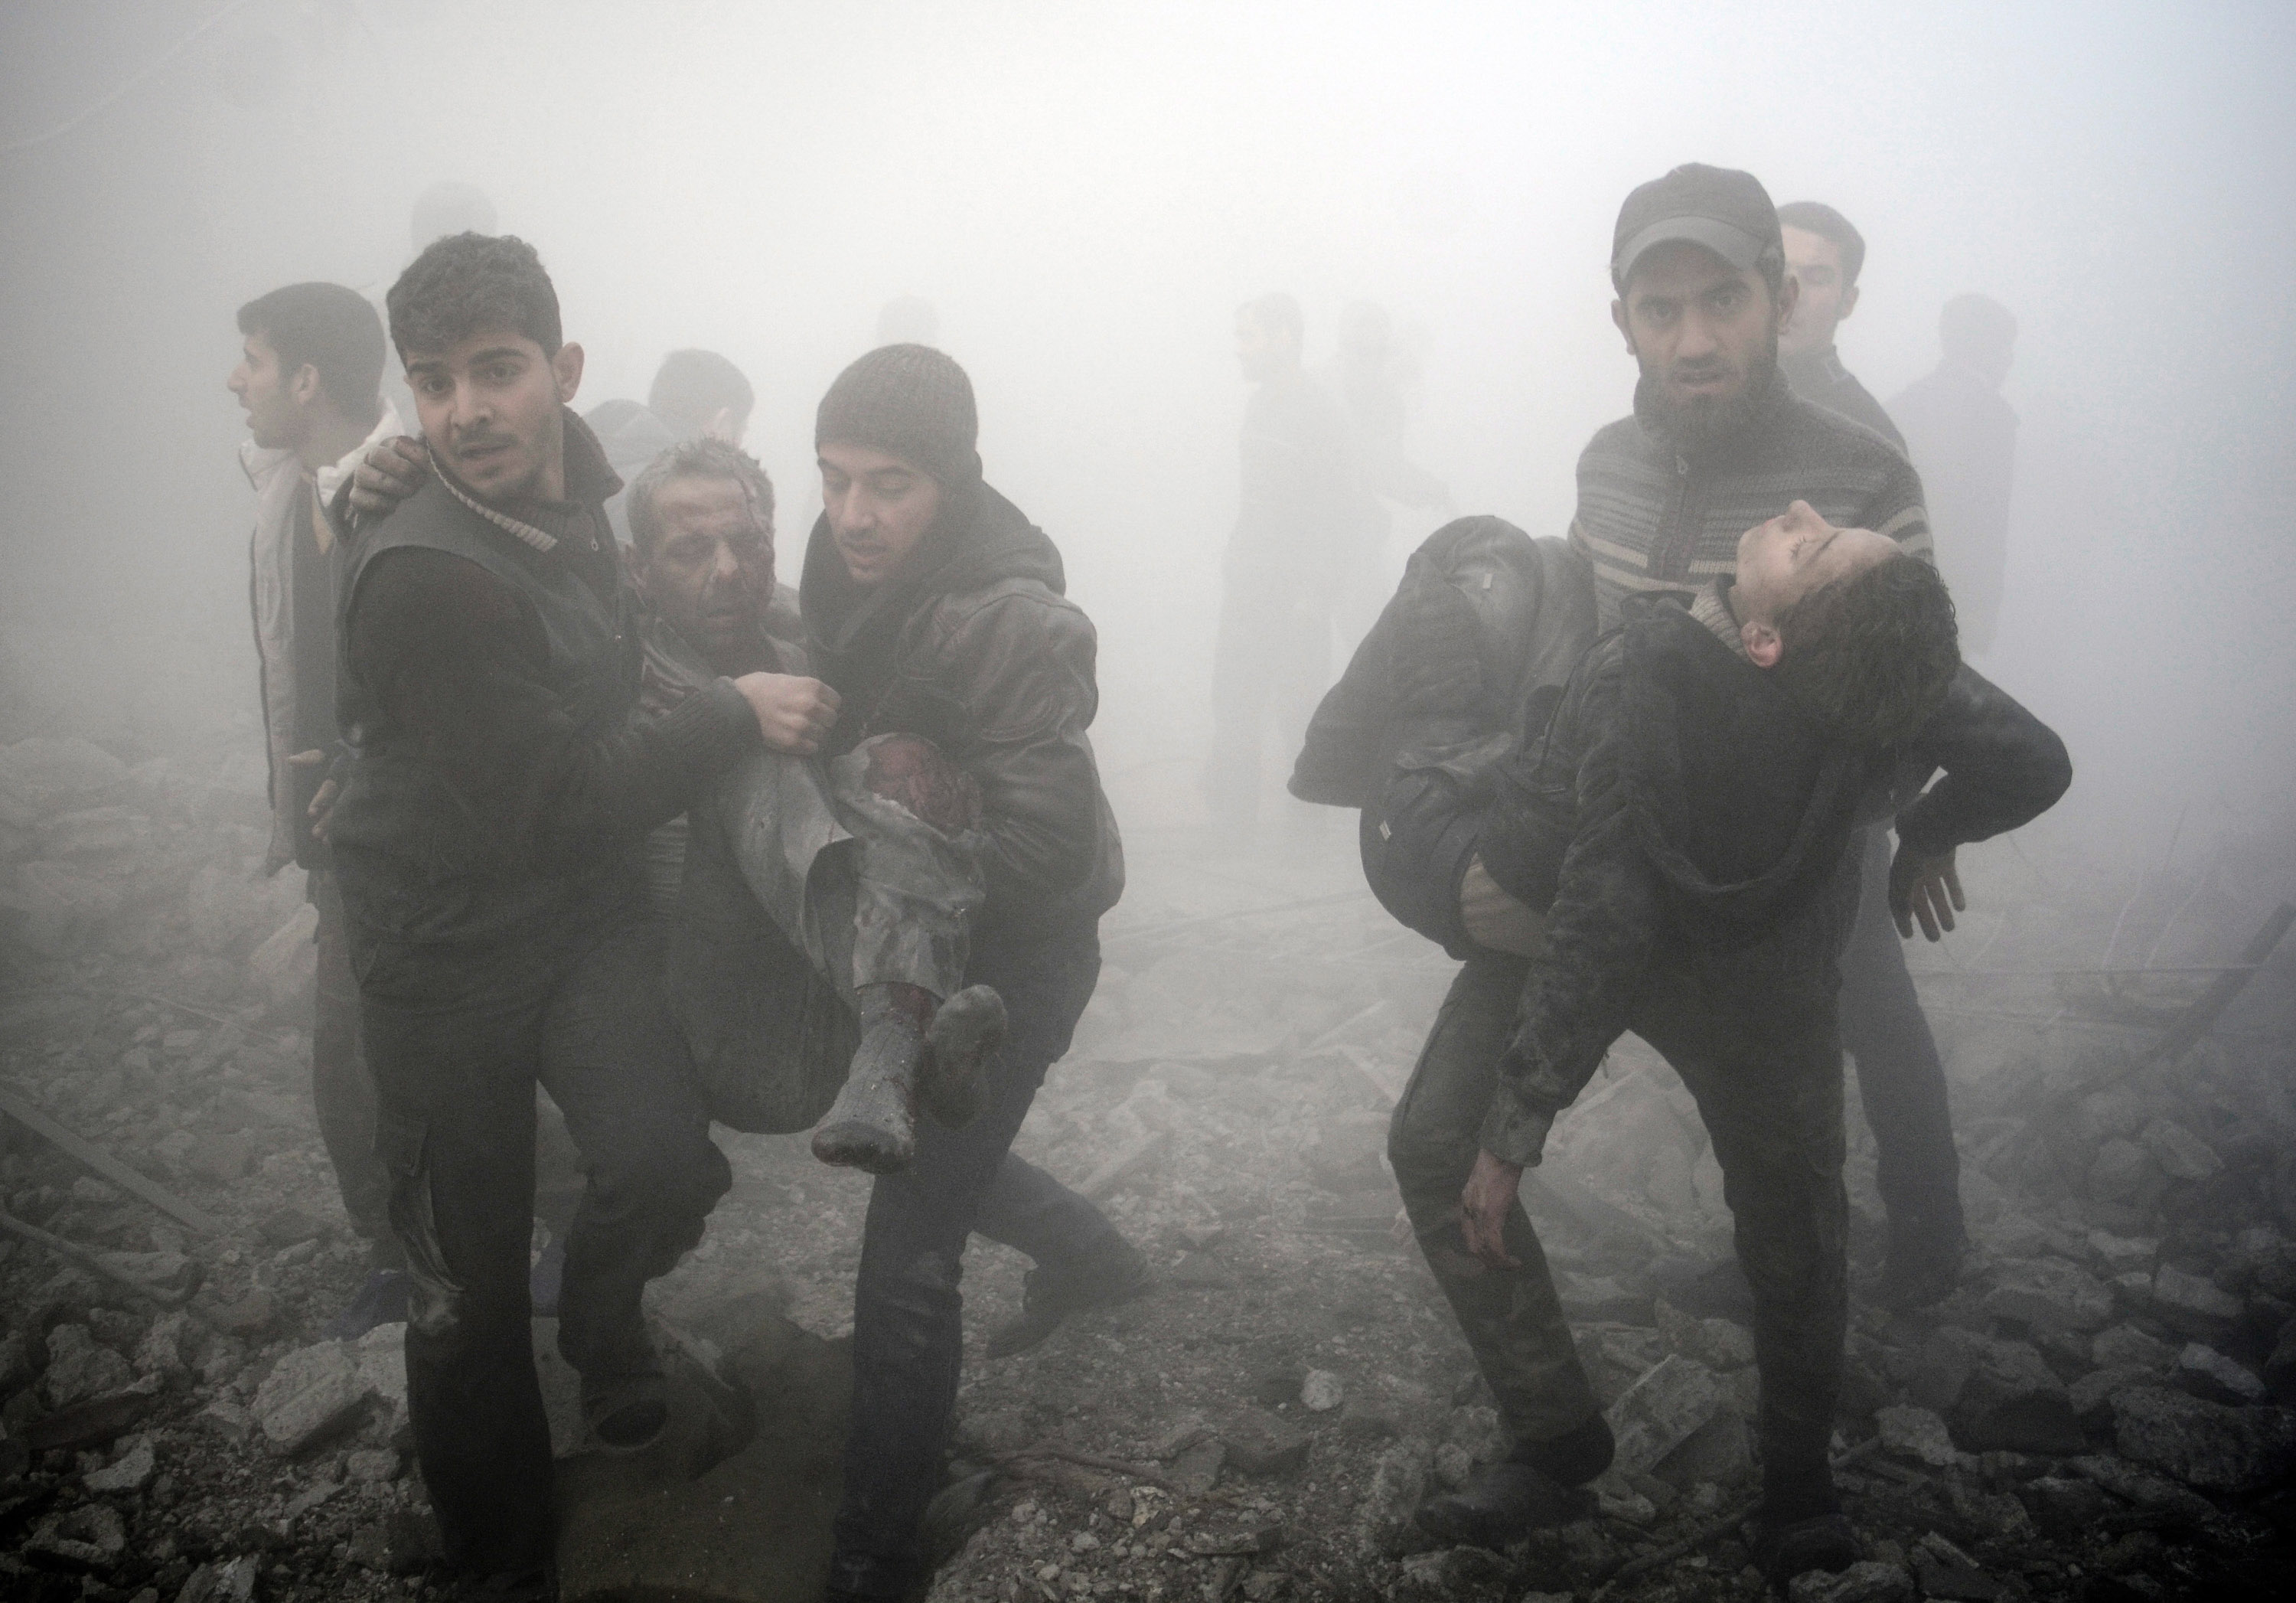 Syrian men carry injured victims following a reported air strike on the besieged rebel-held town of Douma, northeast of the capital Damascus on January 21, 2015. Rebel-held towns such as Douma face frequent aerial and tank bombardment and the siege means food is scarce and medical facilities are ill-equipped to handle either illness or injury. AFP PHOTO / SAMEER AL-DOUMY / AFP PHOTO / - AND SAMEER AL-DOUMY